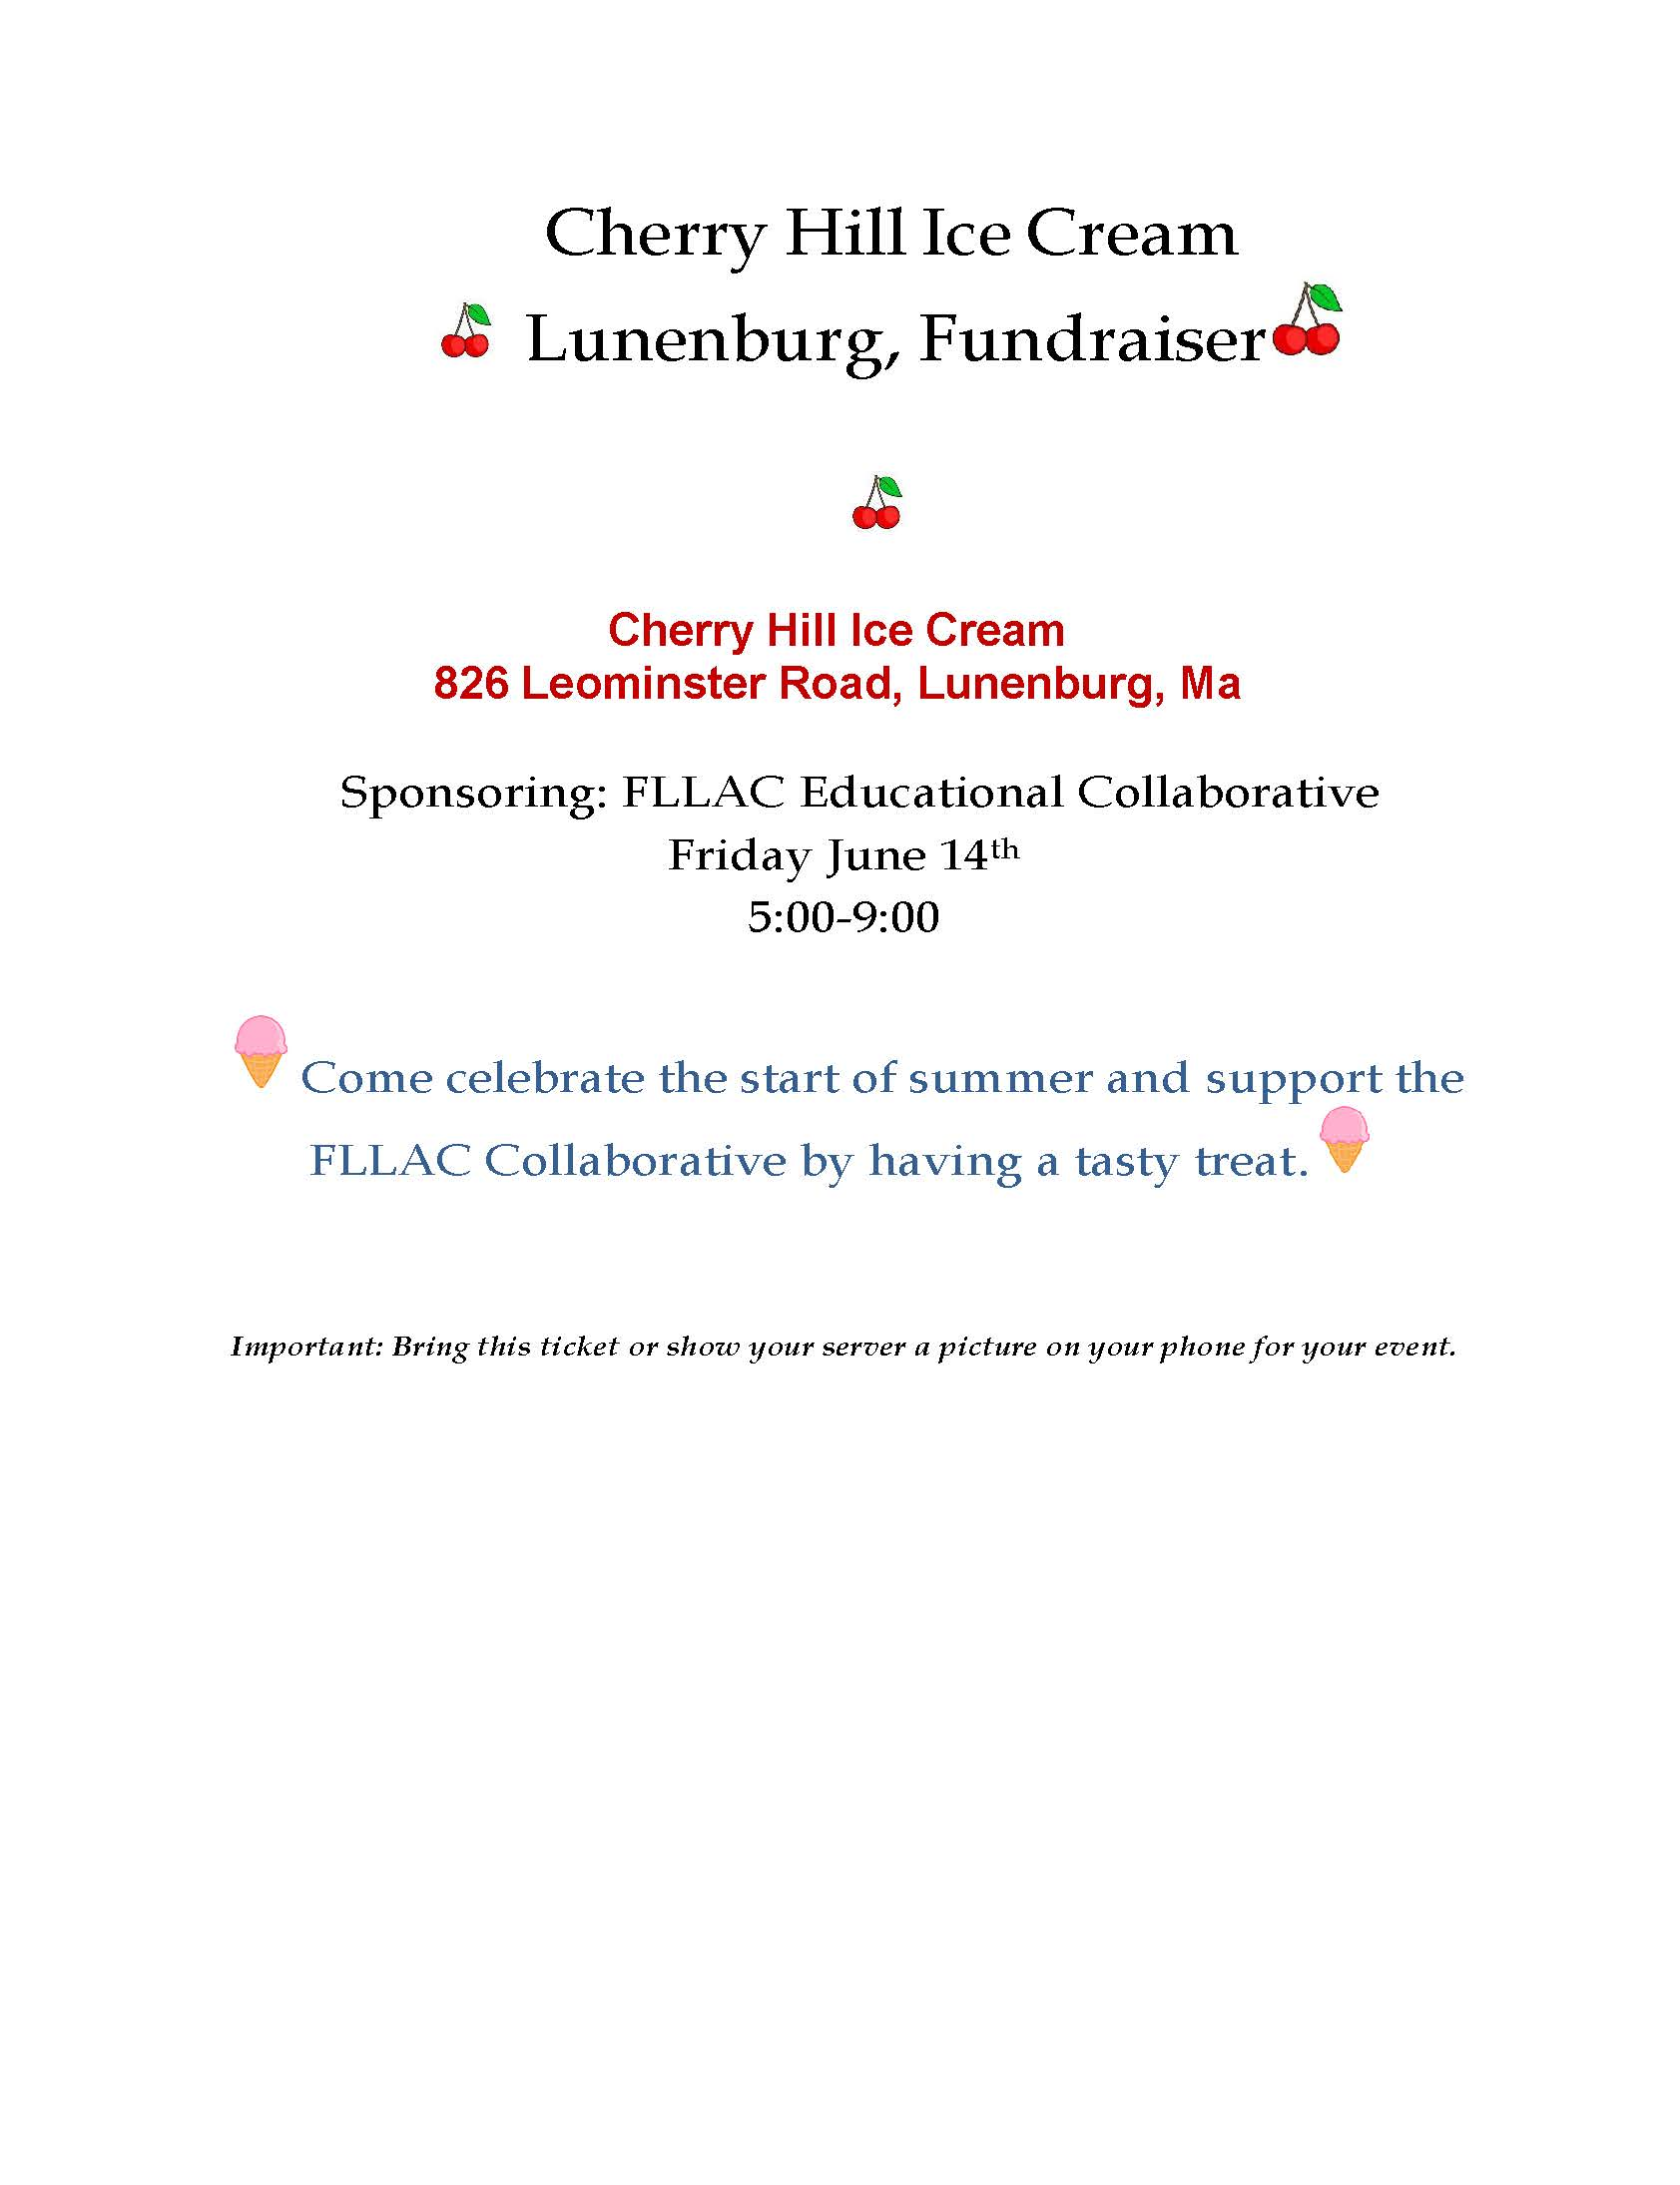 Cherry Hill Fundraiser